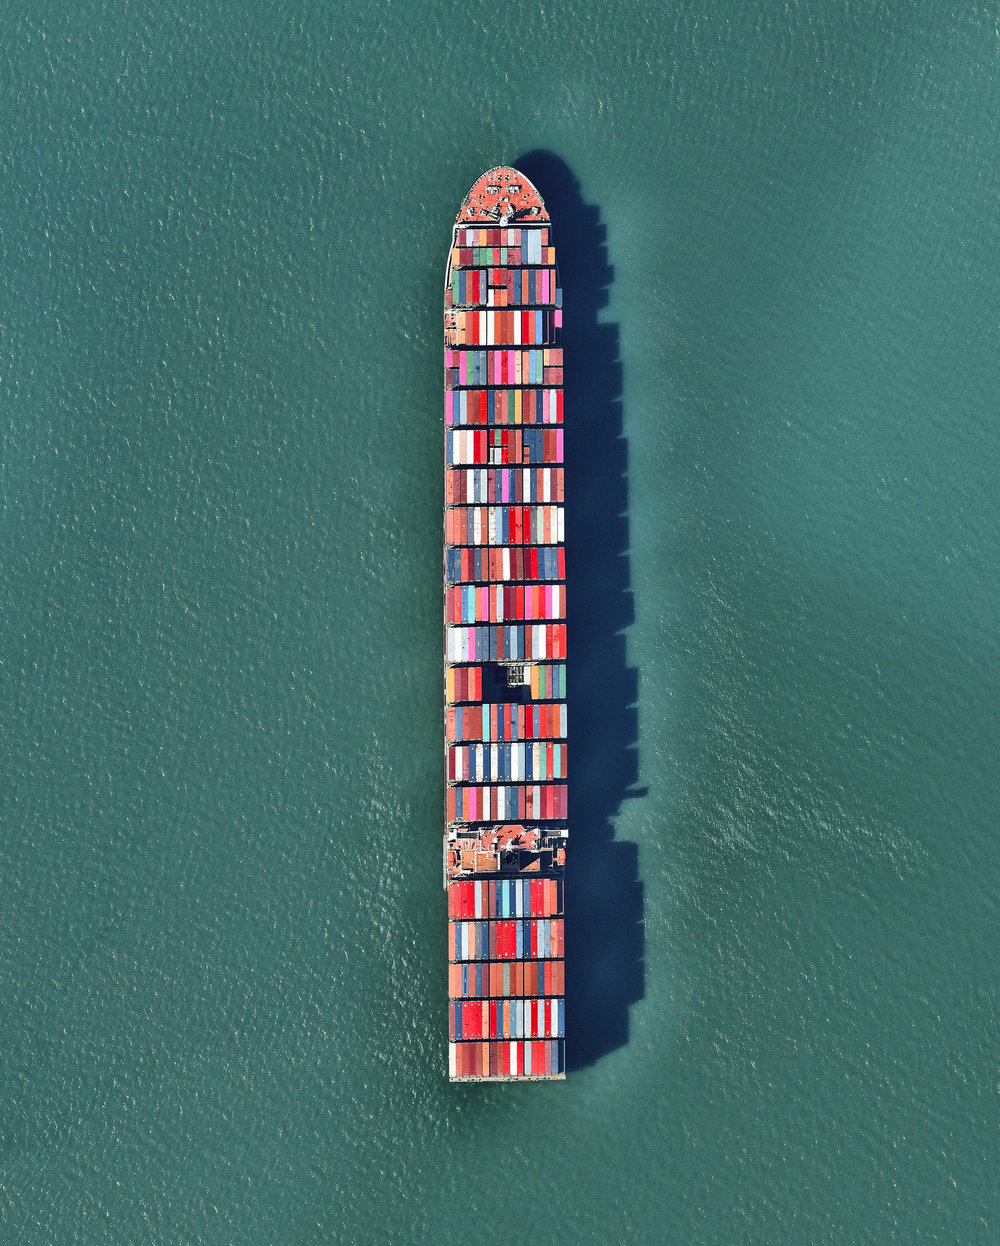 """A ship full of containerized cargo navigates San Francisco Bay, located between San Francisco and Oakland, California. Due to San Francisco's limited real estate, Oakland has served as the primary Bay Area port since the 1960s. The Port of San Francisco handled no containerized cargo in 2017, whereas the Port of Oakland had a throughput of nearly 2.5 million twenty-foot equivalent units (TEUs) that year.  37°46'01.3""""N, 122°20'58.3""""W  Source imagery: Nearmap"""